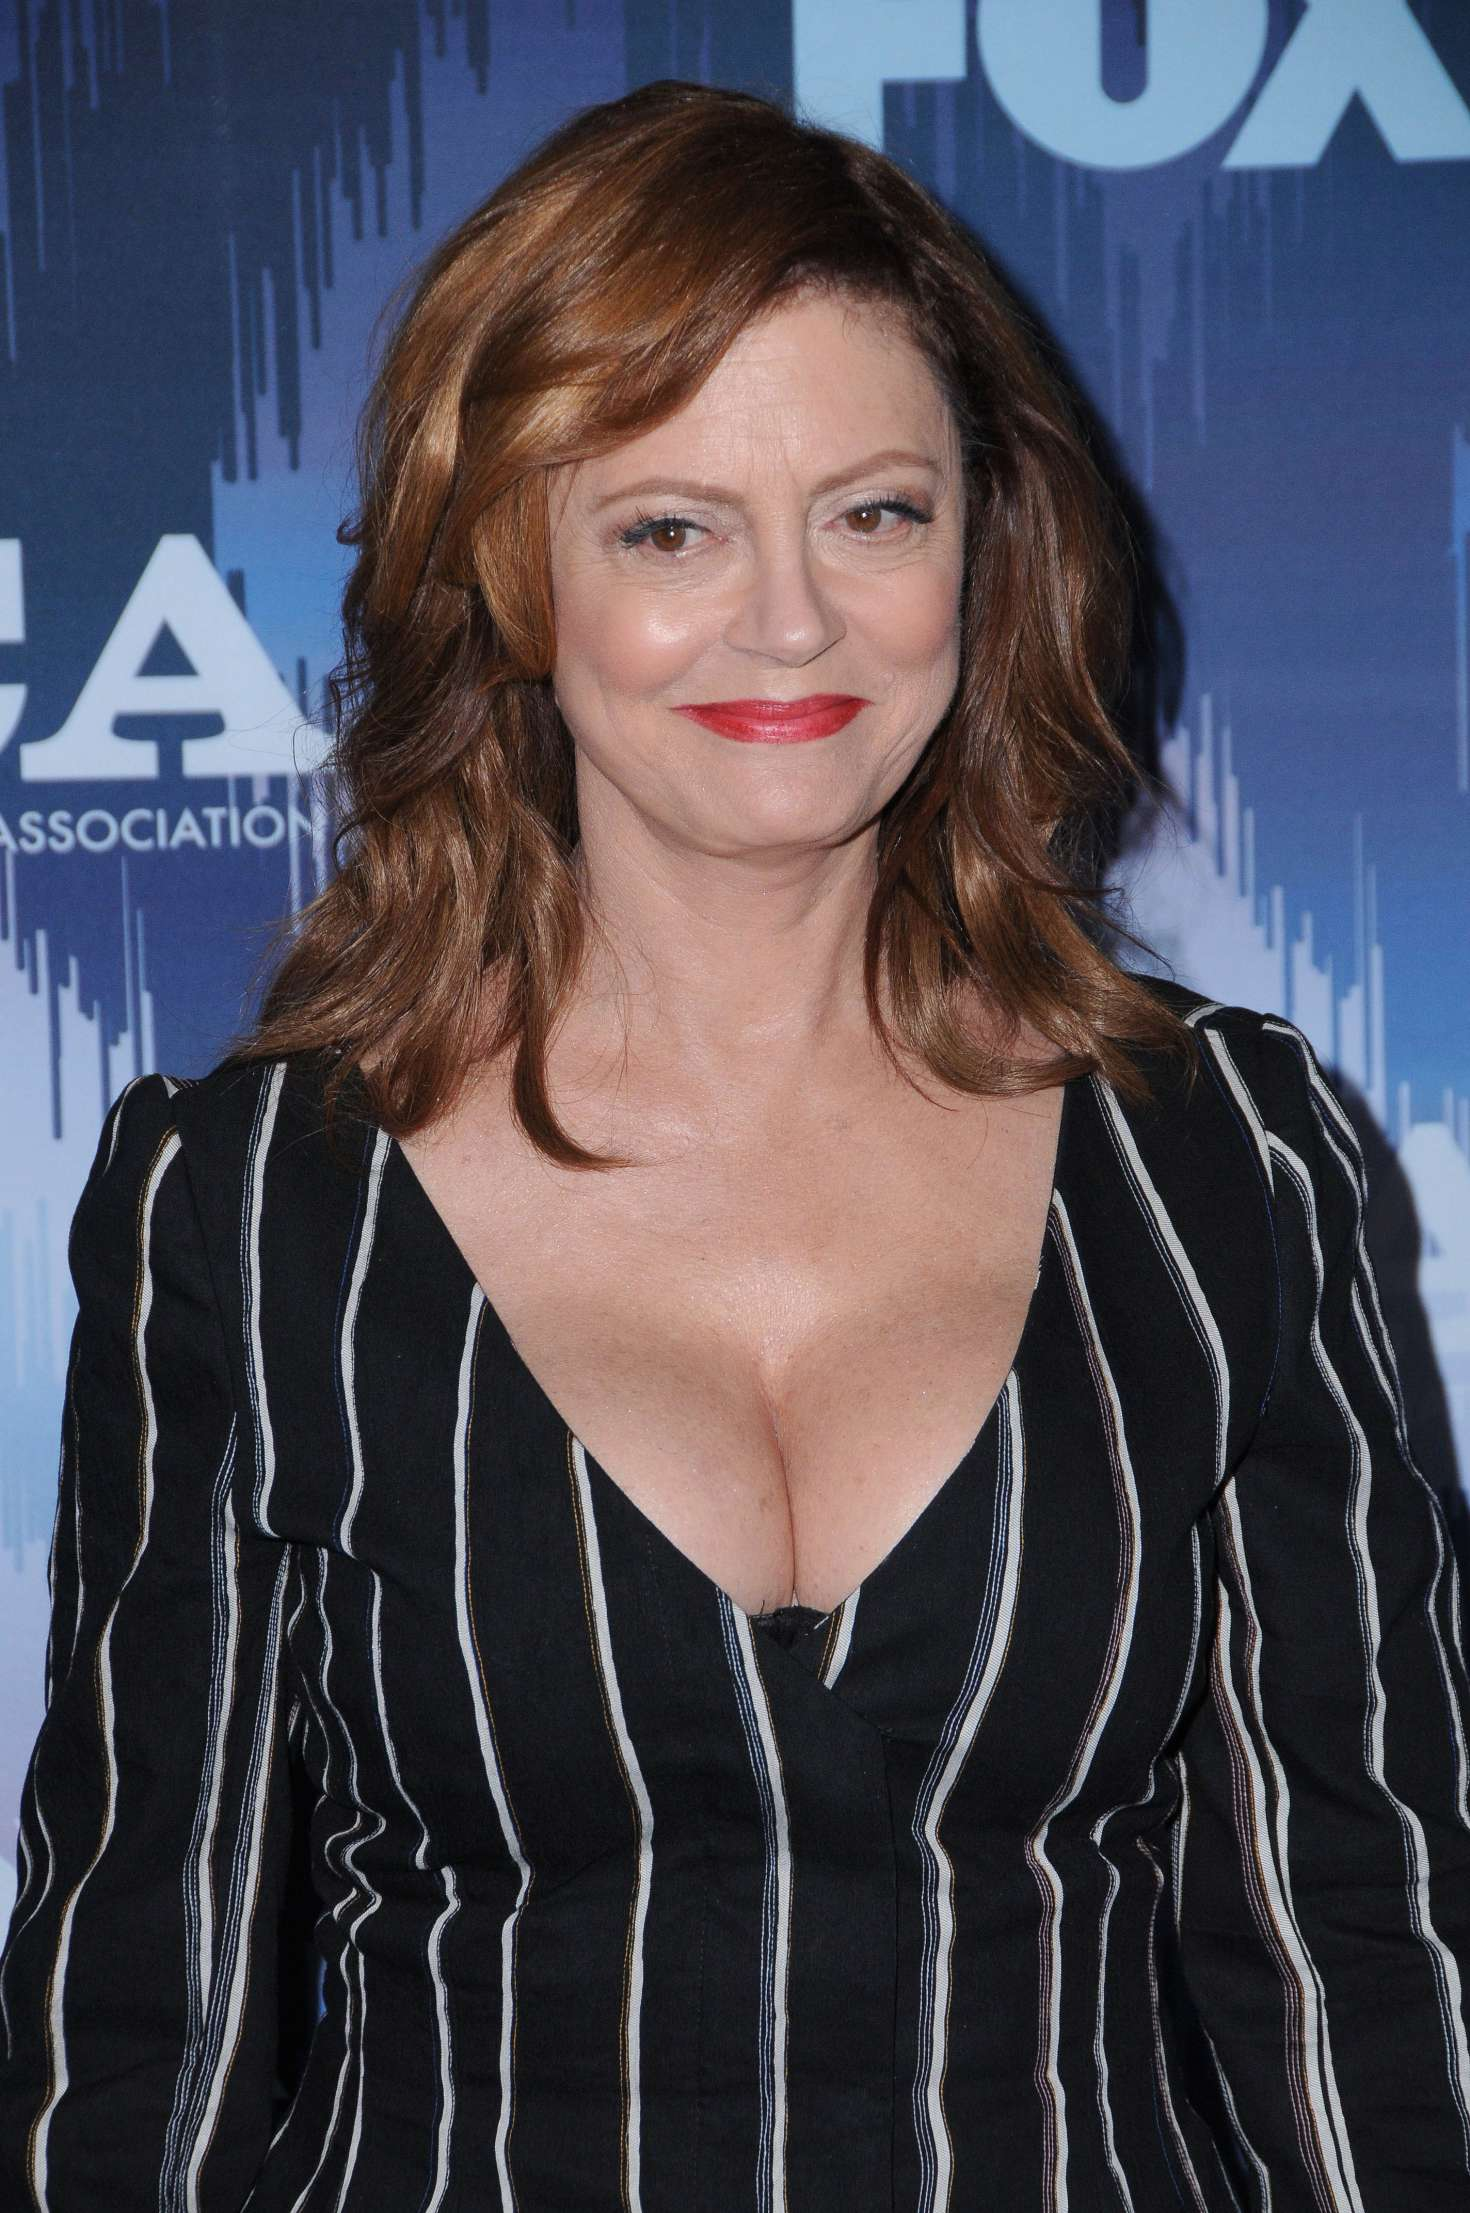 susan sarandon 2017 fox winter tca all star party in pasadena